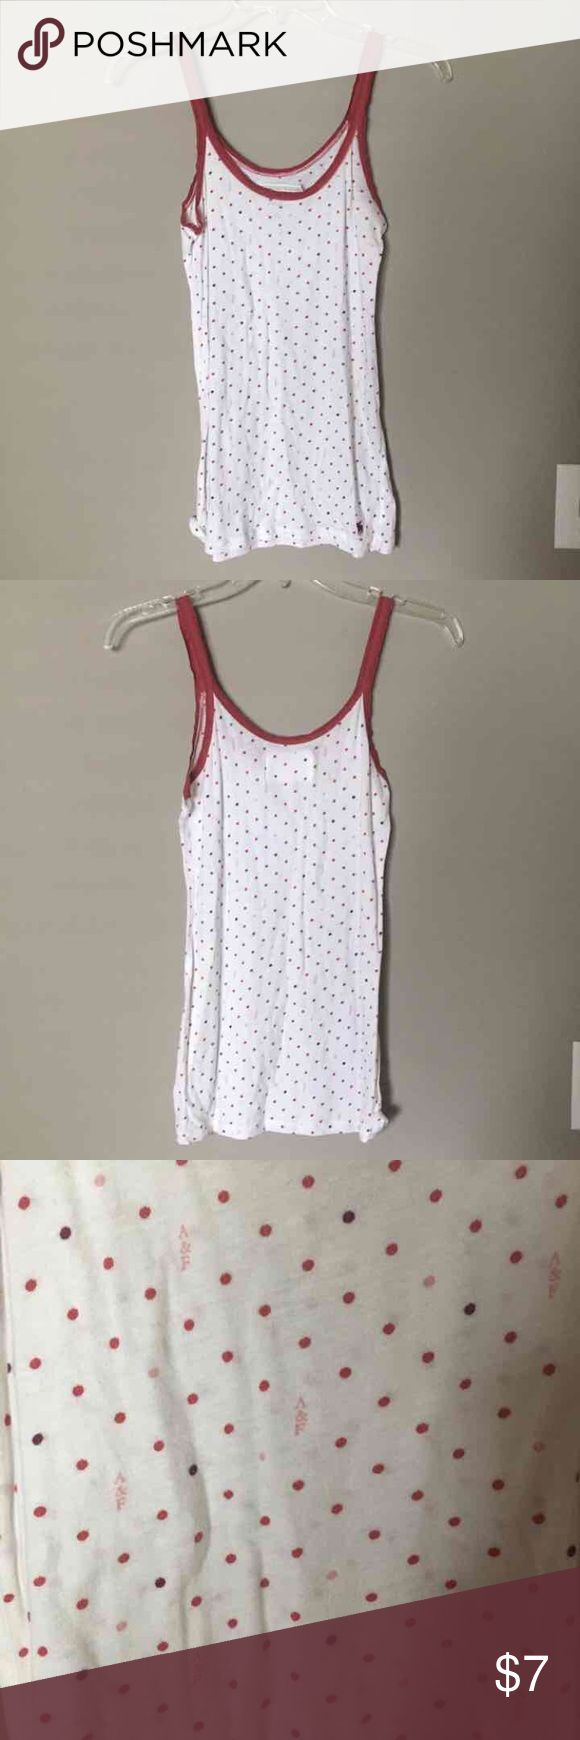 Abercrombie & Fitch Polka Dot Cami Abercrombie & Fitch white tank cami with maroon trim and polka dots. Size M, smoke-free home Abercrombie & Fitch Tops Tank Tops